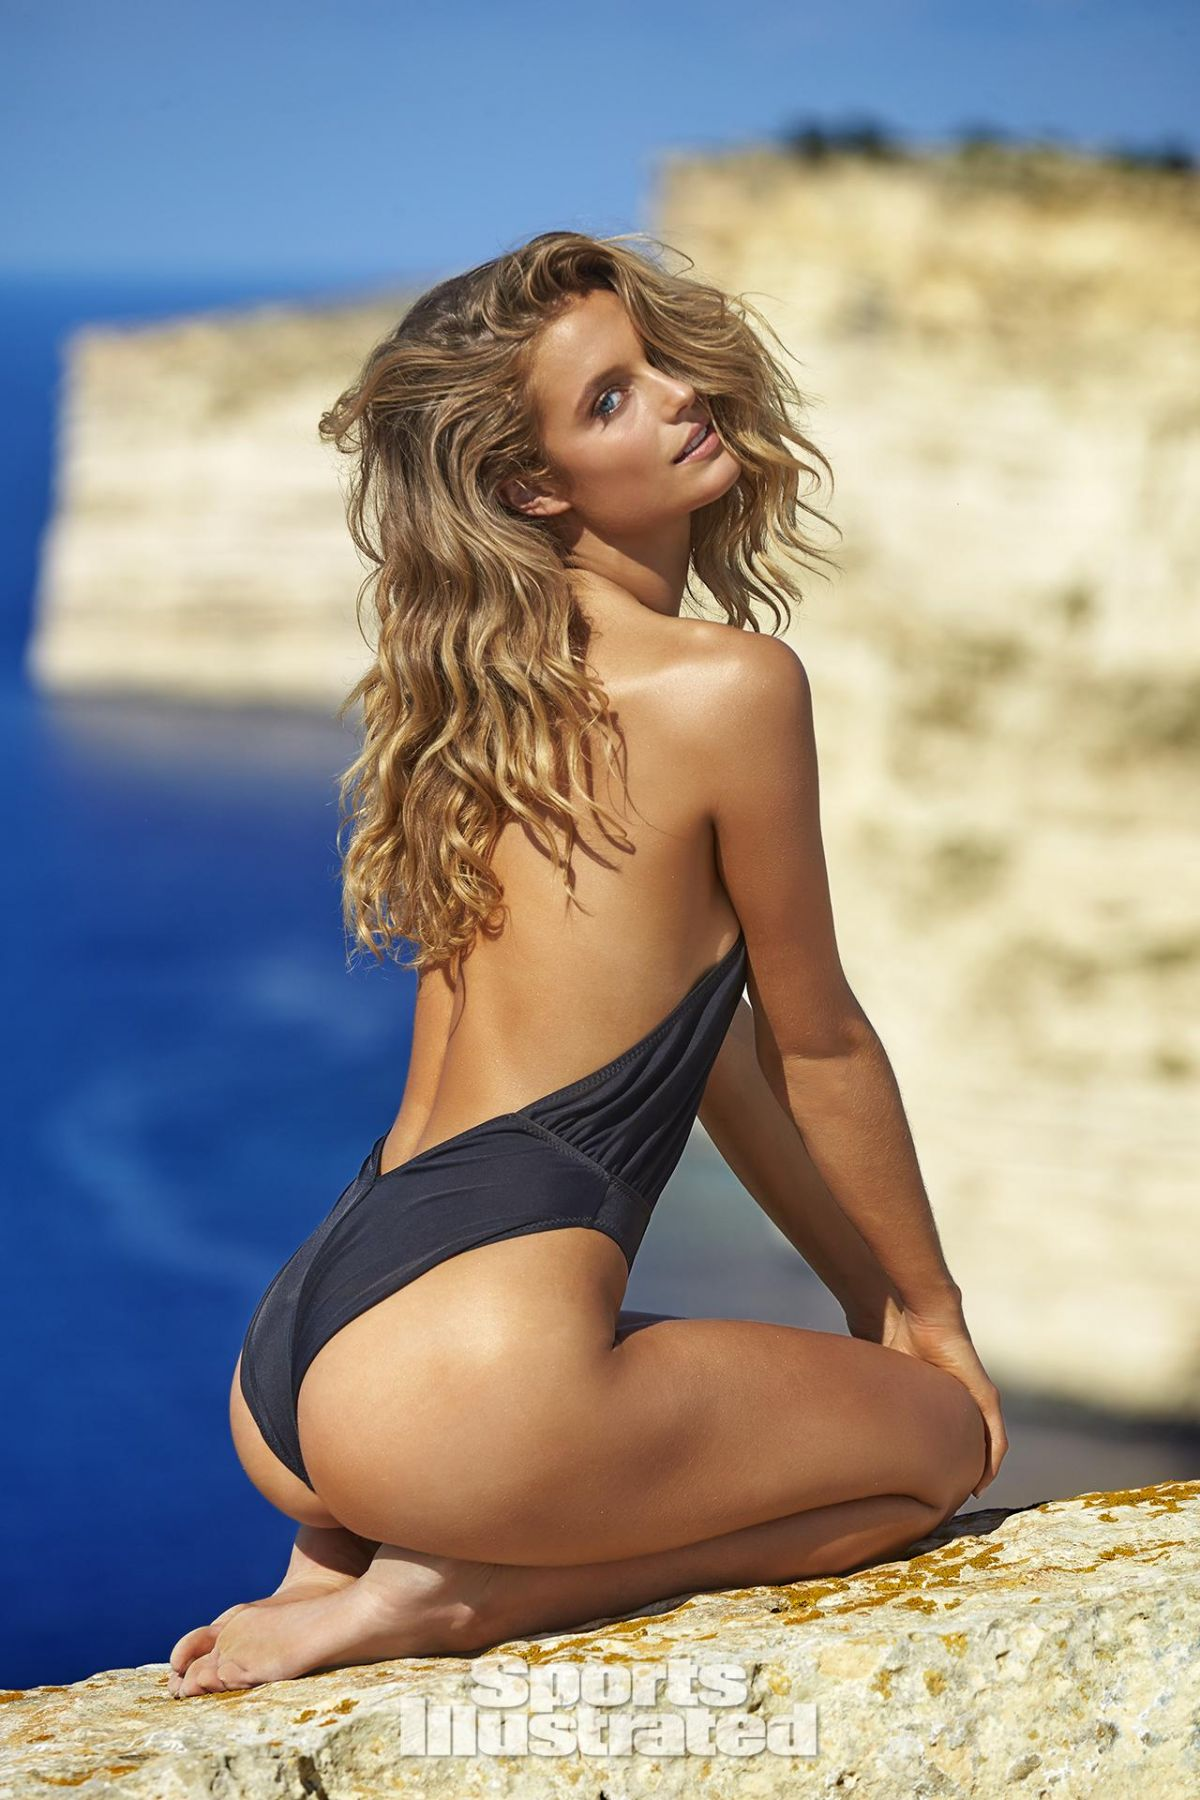 Kate Bock Sports Illustrated: Swimsuit Issue 2019